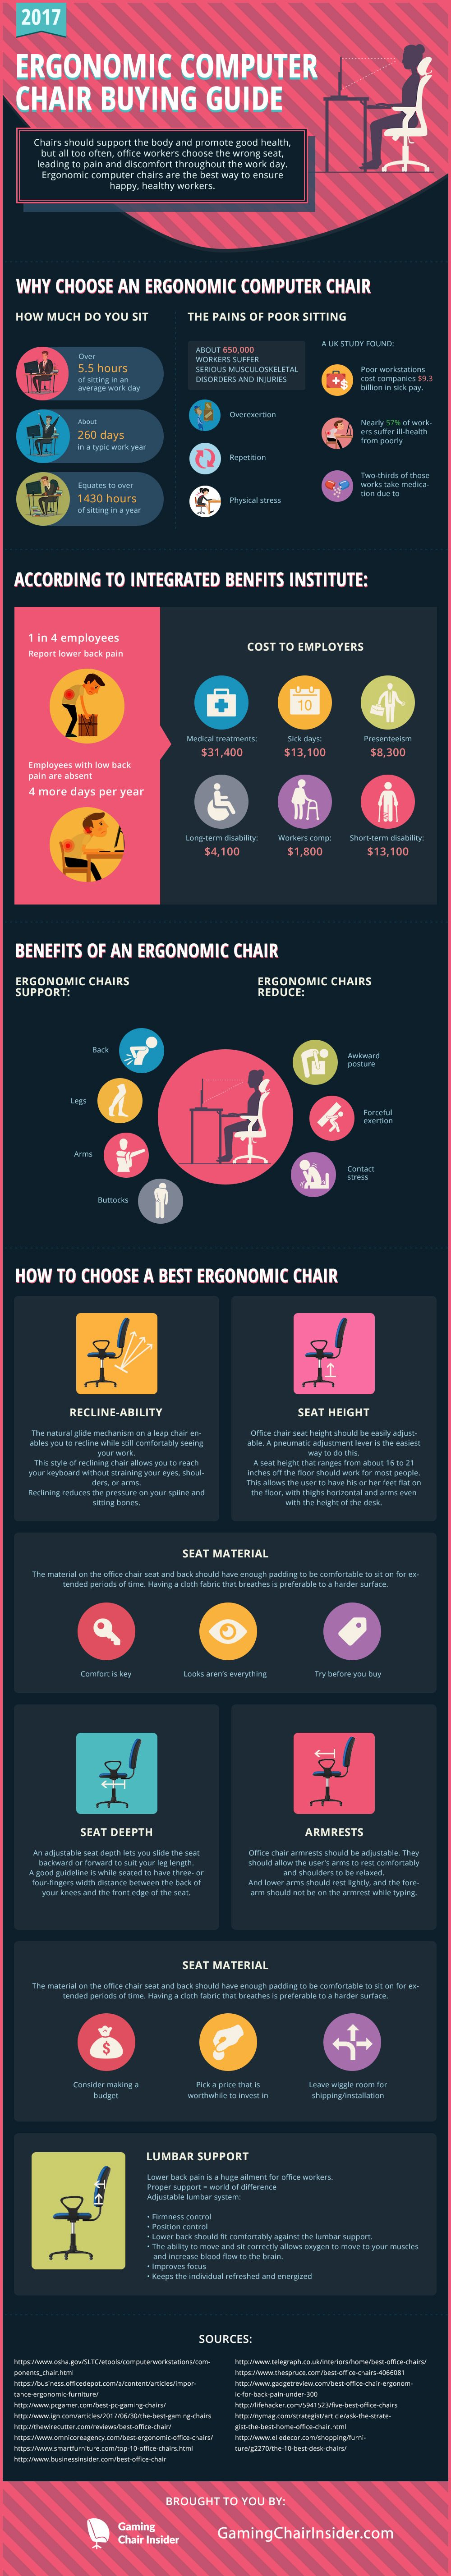 How to Choose the Best Ergonomic Computer Chair - Infographic